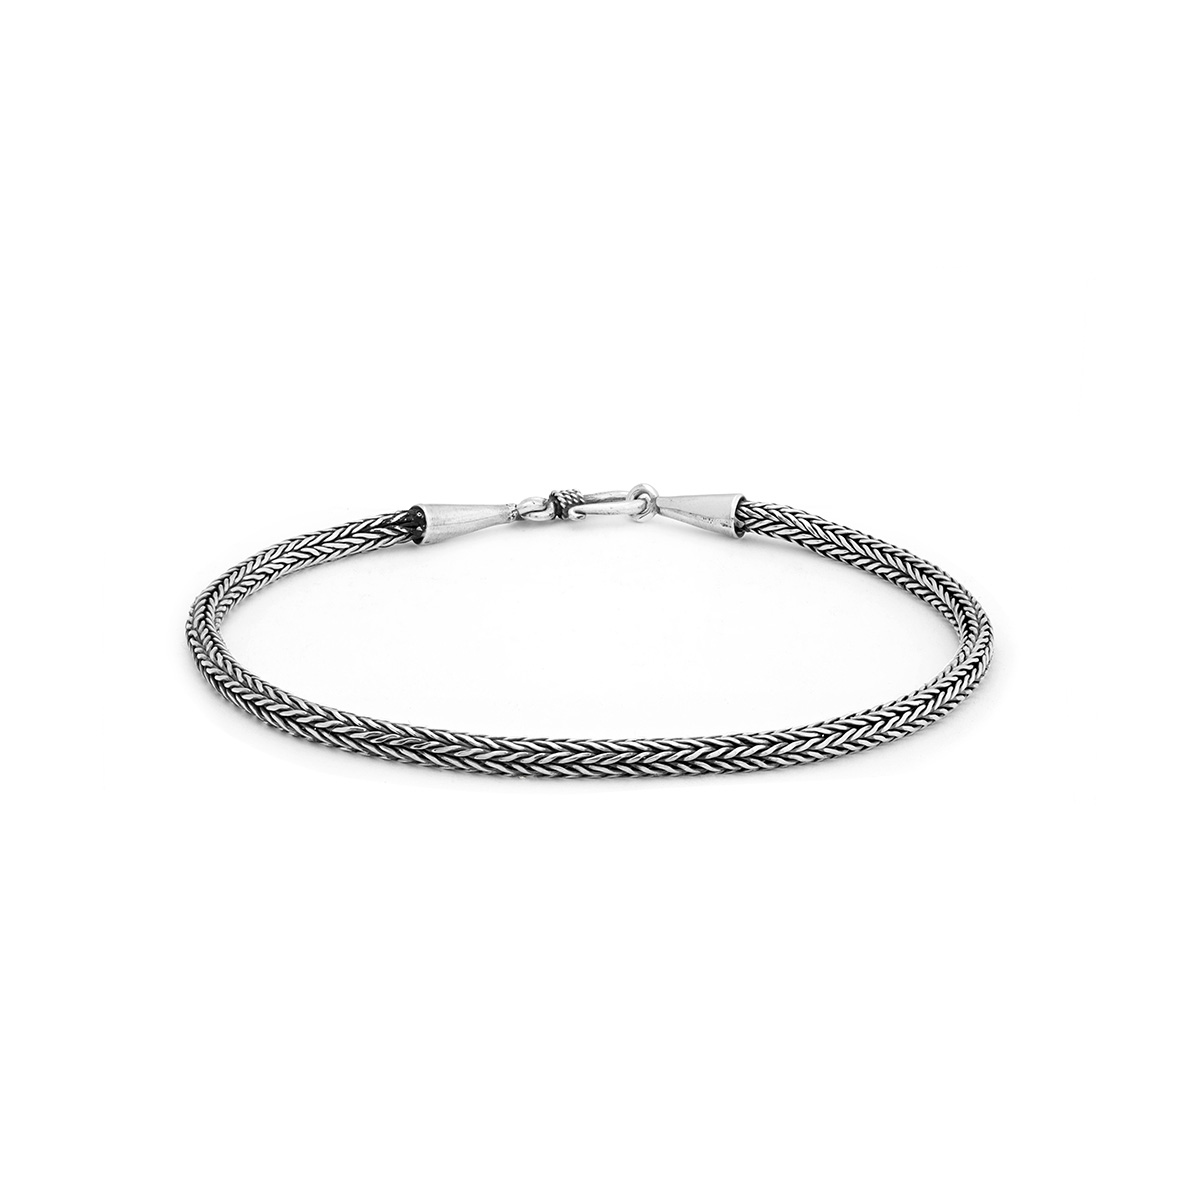 Nyang Silver Bracelet - Handcrafted Sterling Silver Jewellery from Bali by Nusa